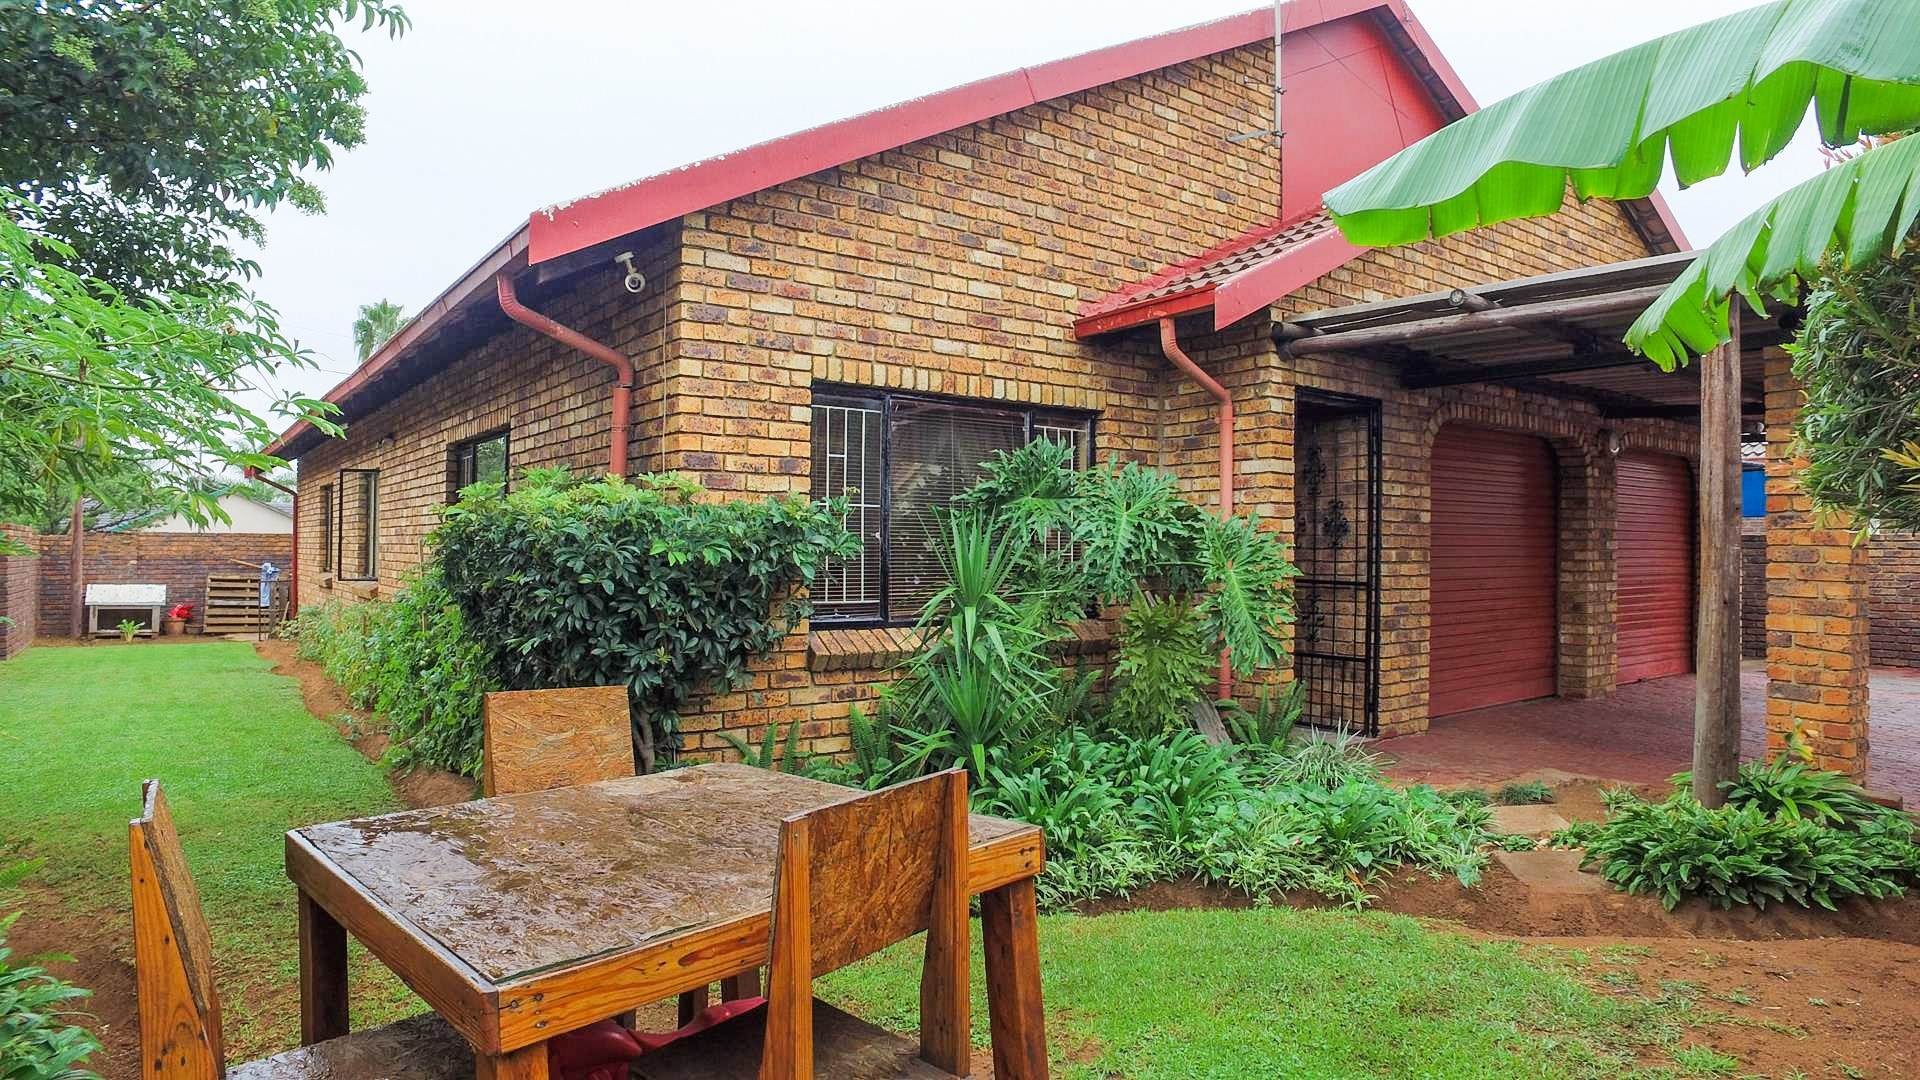 3 BedroomHouse For Sale In Mineralia